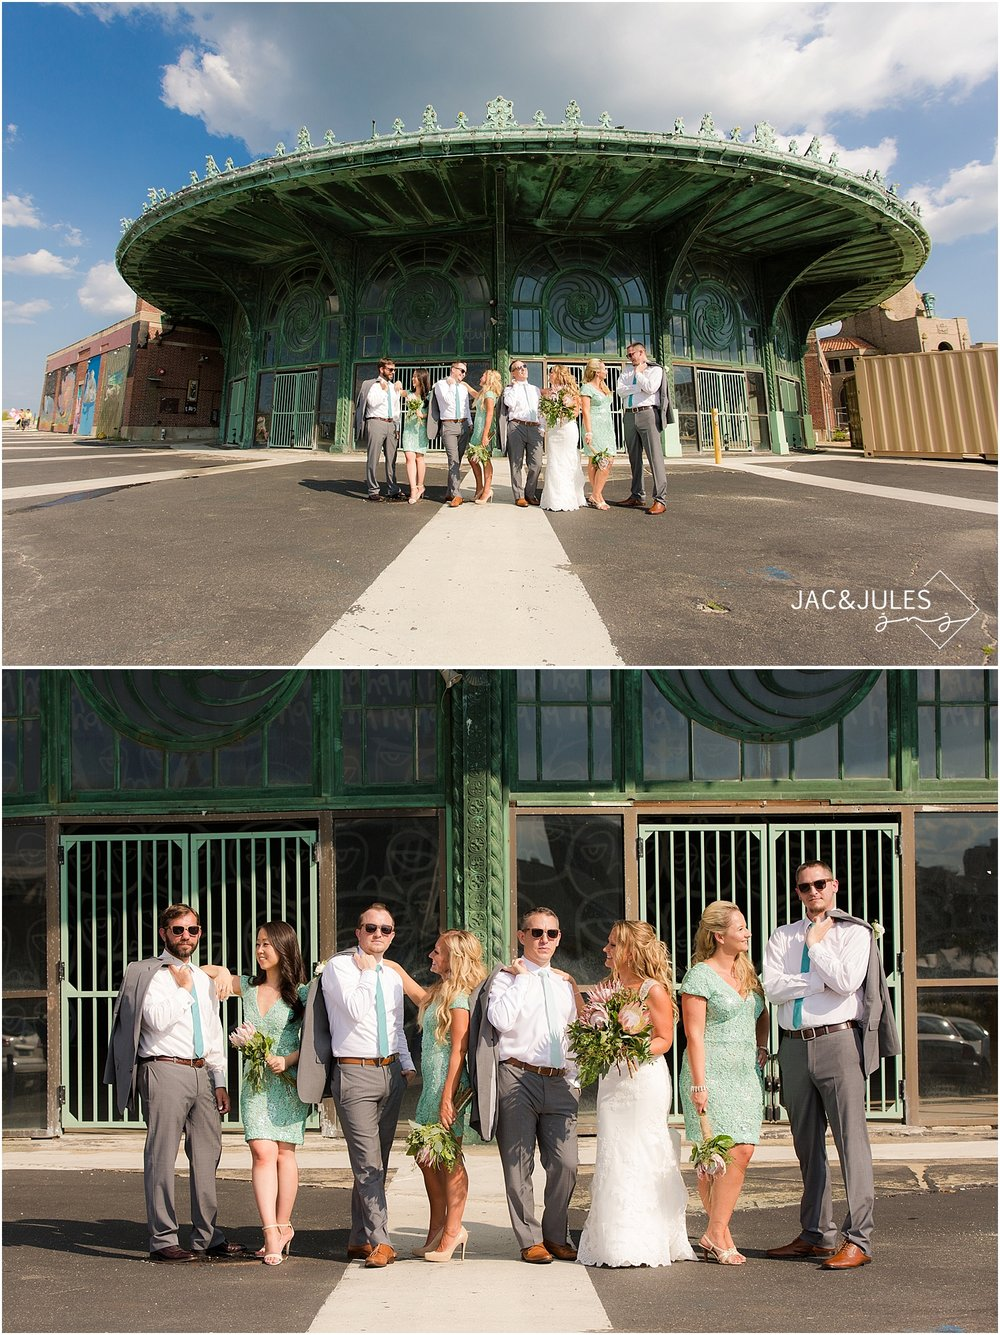 jacnjules photographs fun bridal party in Asbury Park, NJ